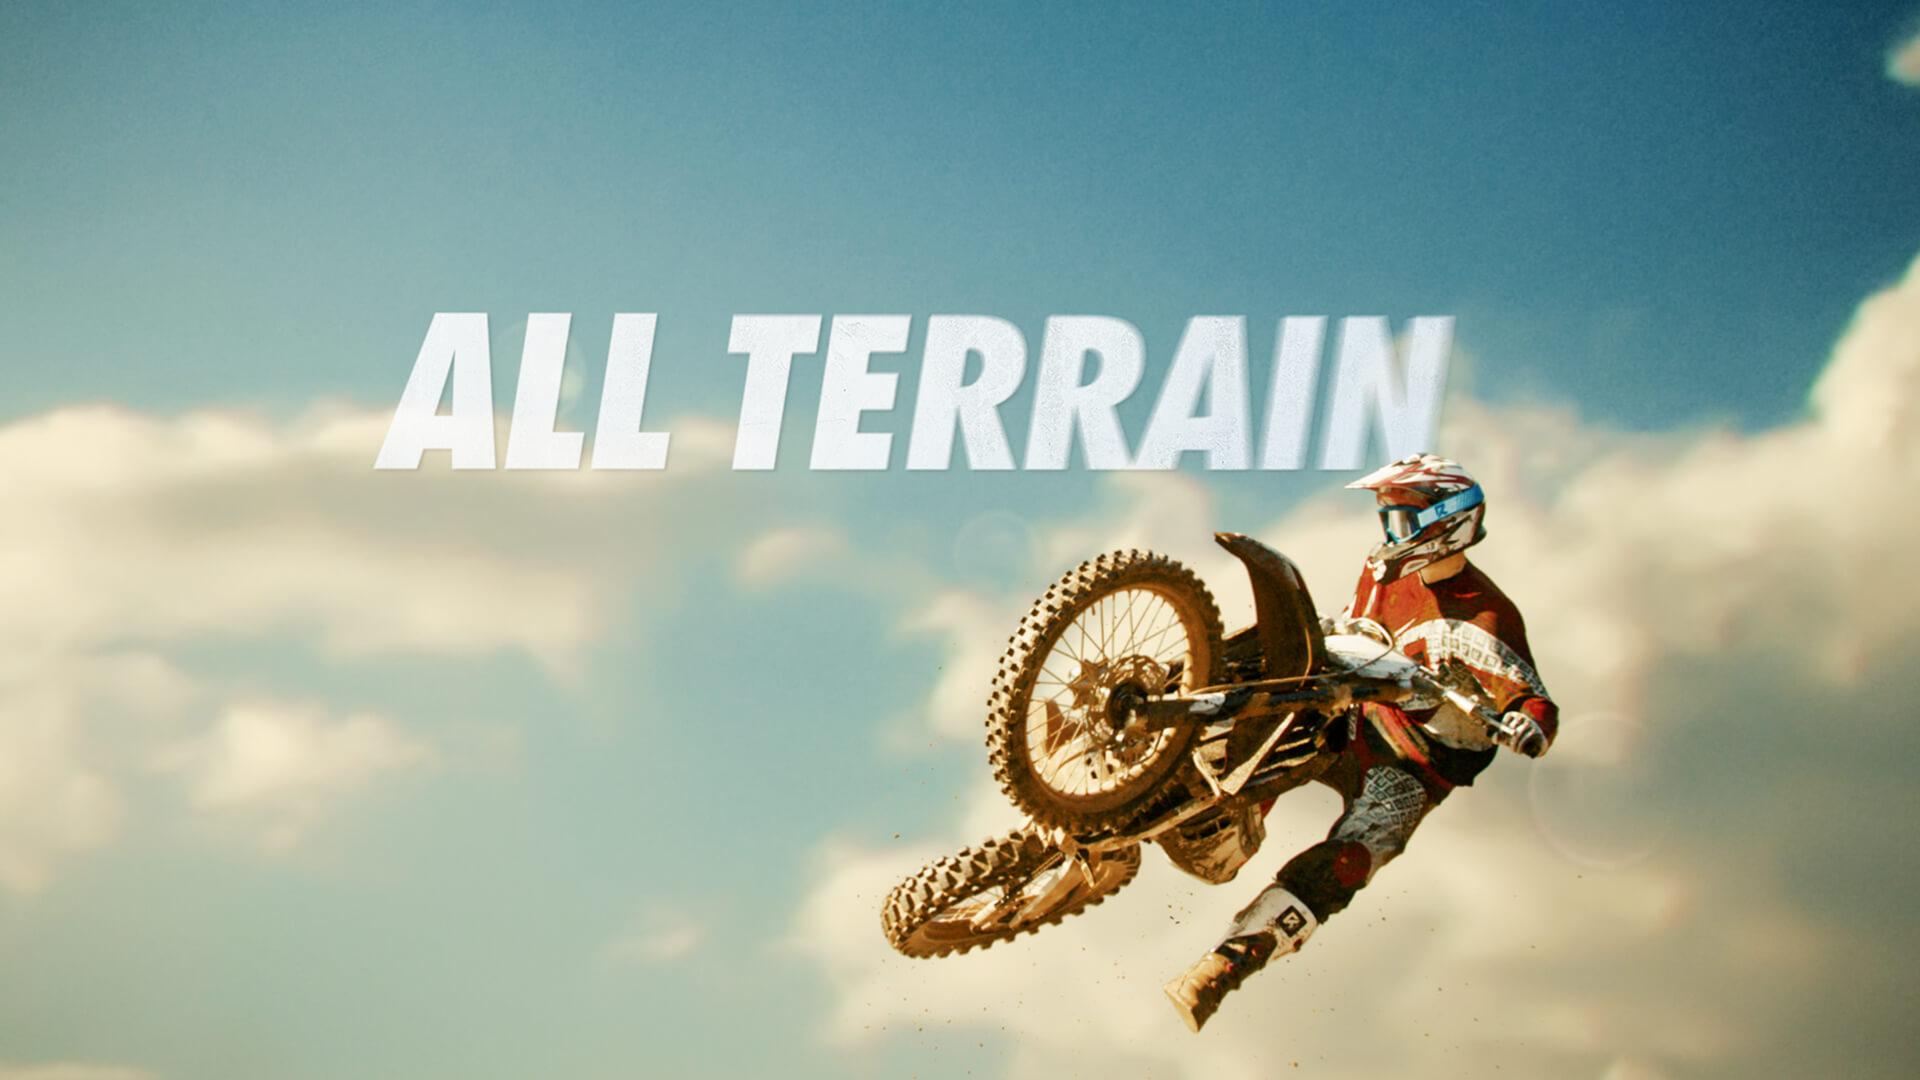 All Terrain.  All Vehicles.  All You.